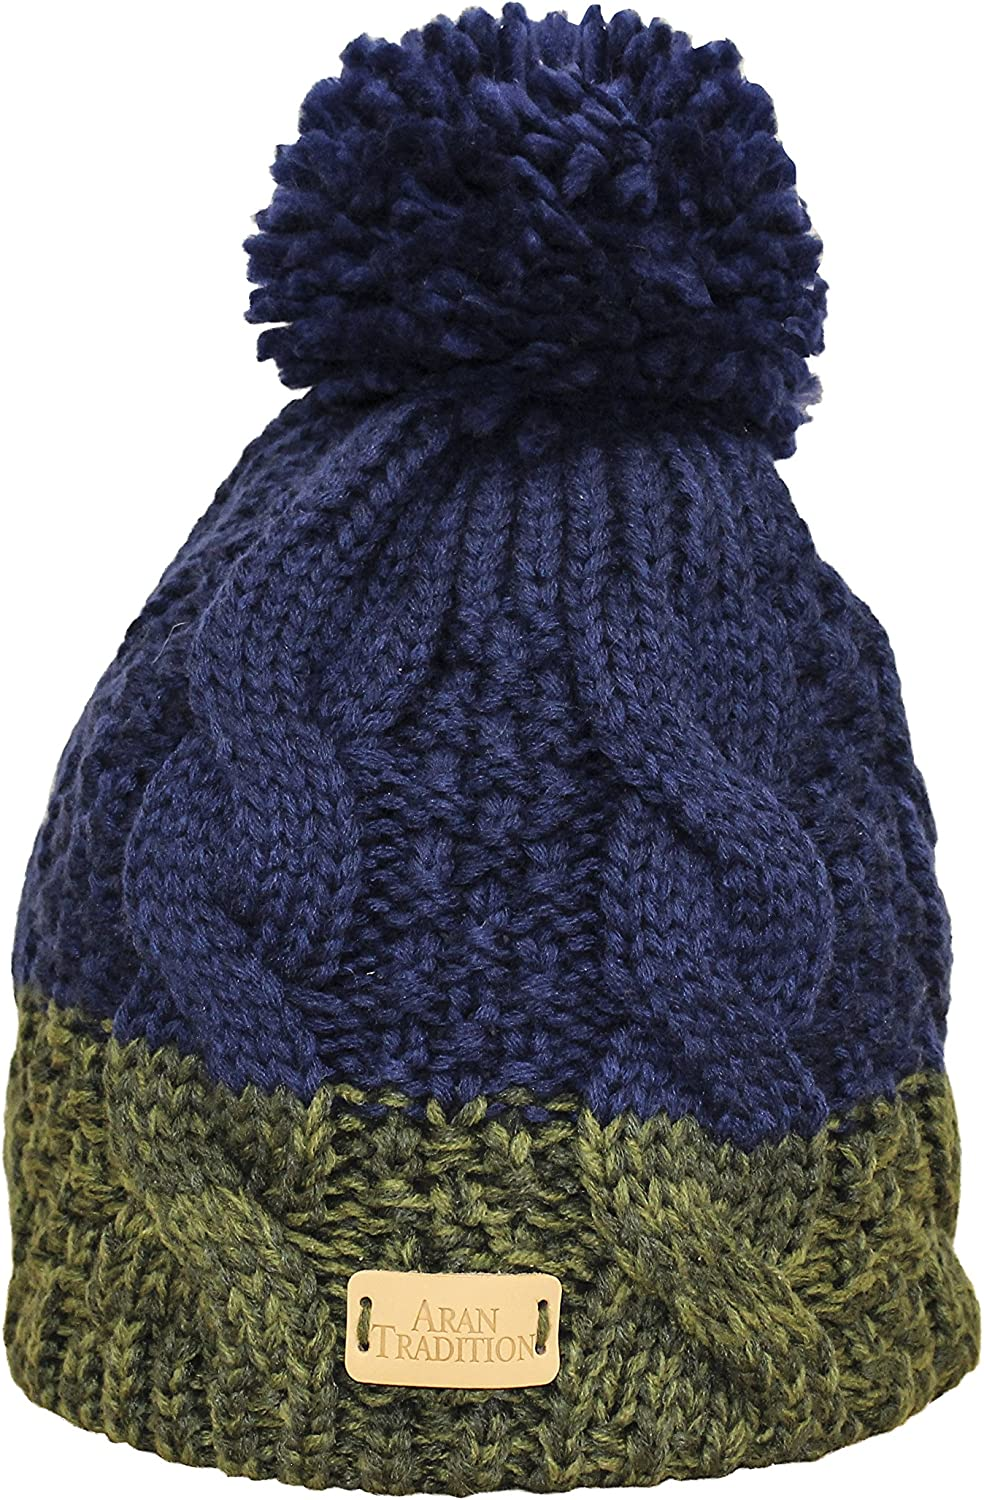 Aran Traditions Womens Ladies Cable Knit Hat Warm Winter Beanie Pom Pom Woolly